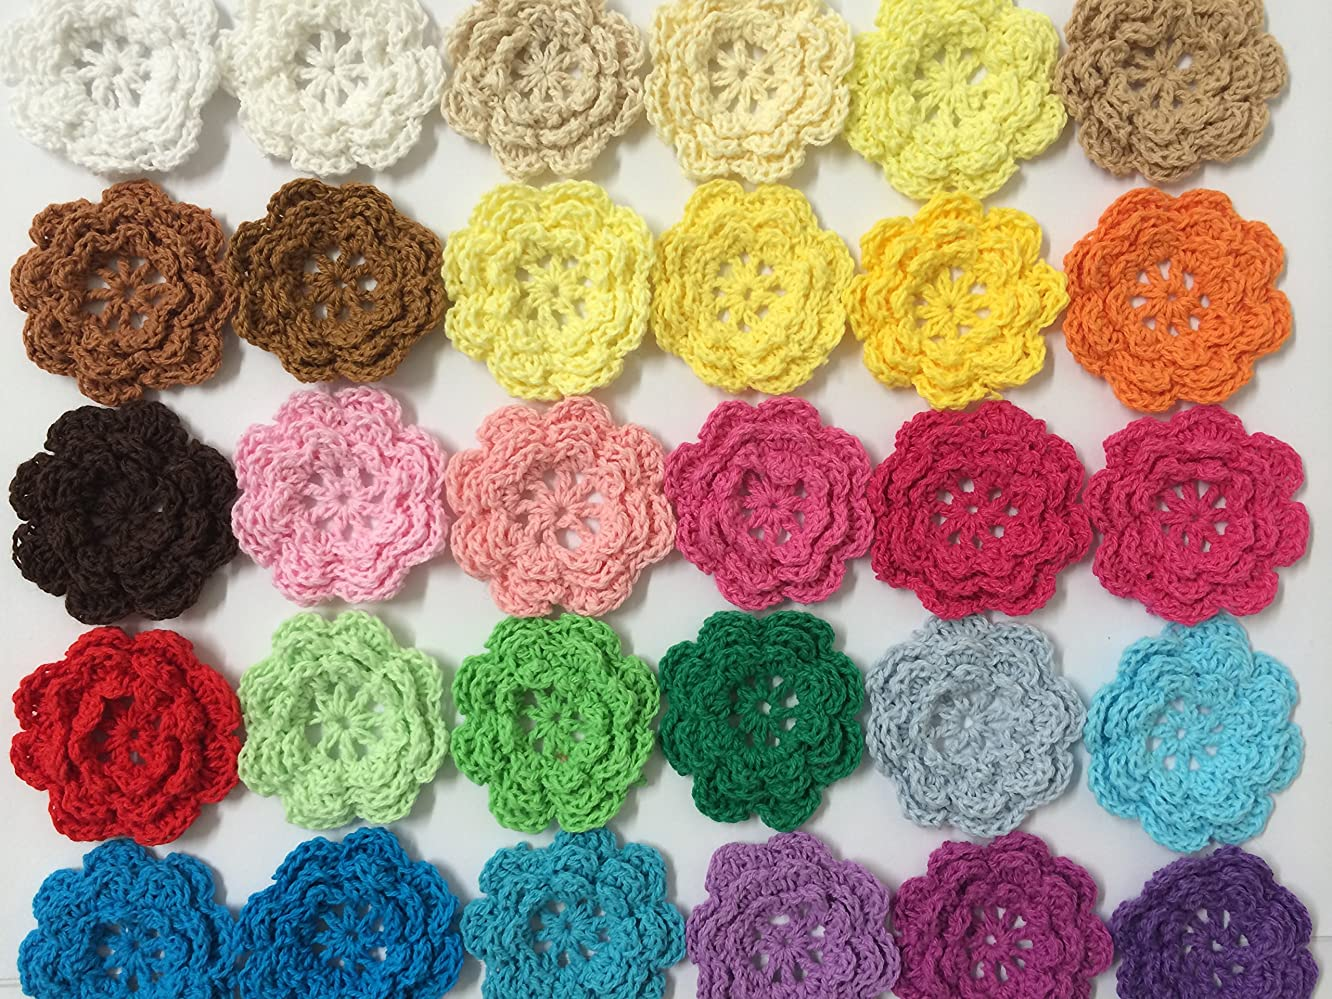 PEPPERLONELY Brand 20PC Rainbow Collection Eight Petals 2 Inch Crocheted Flower Appliques Embellishments